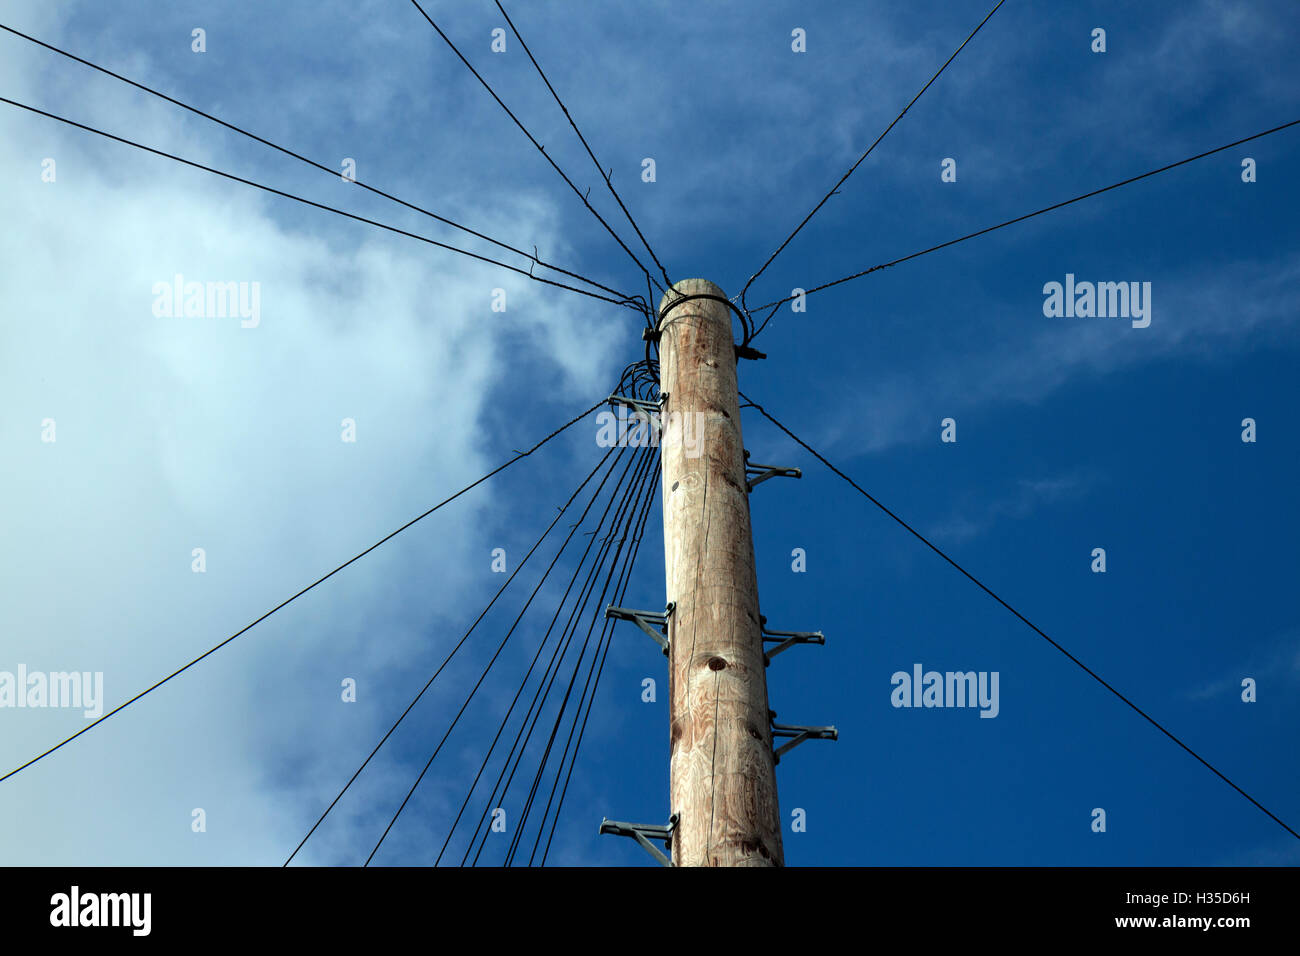 A telegraph pole with wires, UK - Stock Image